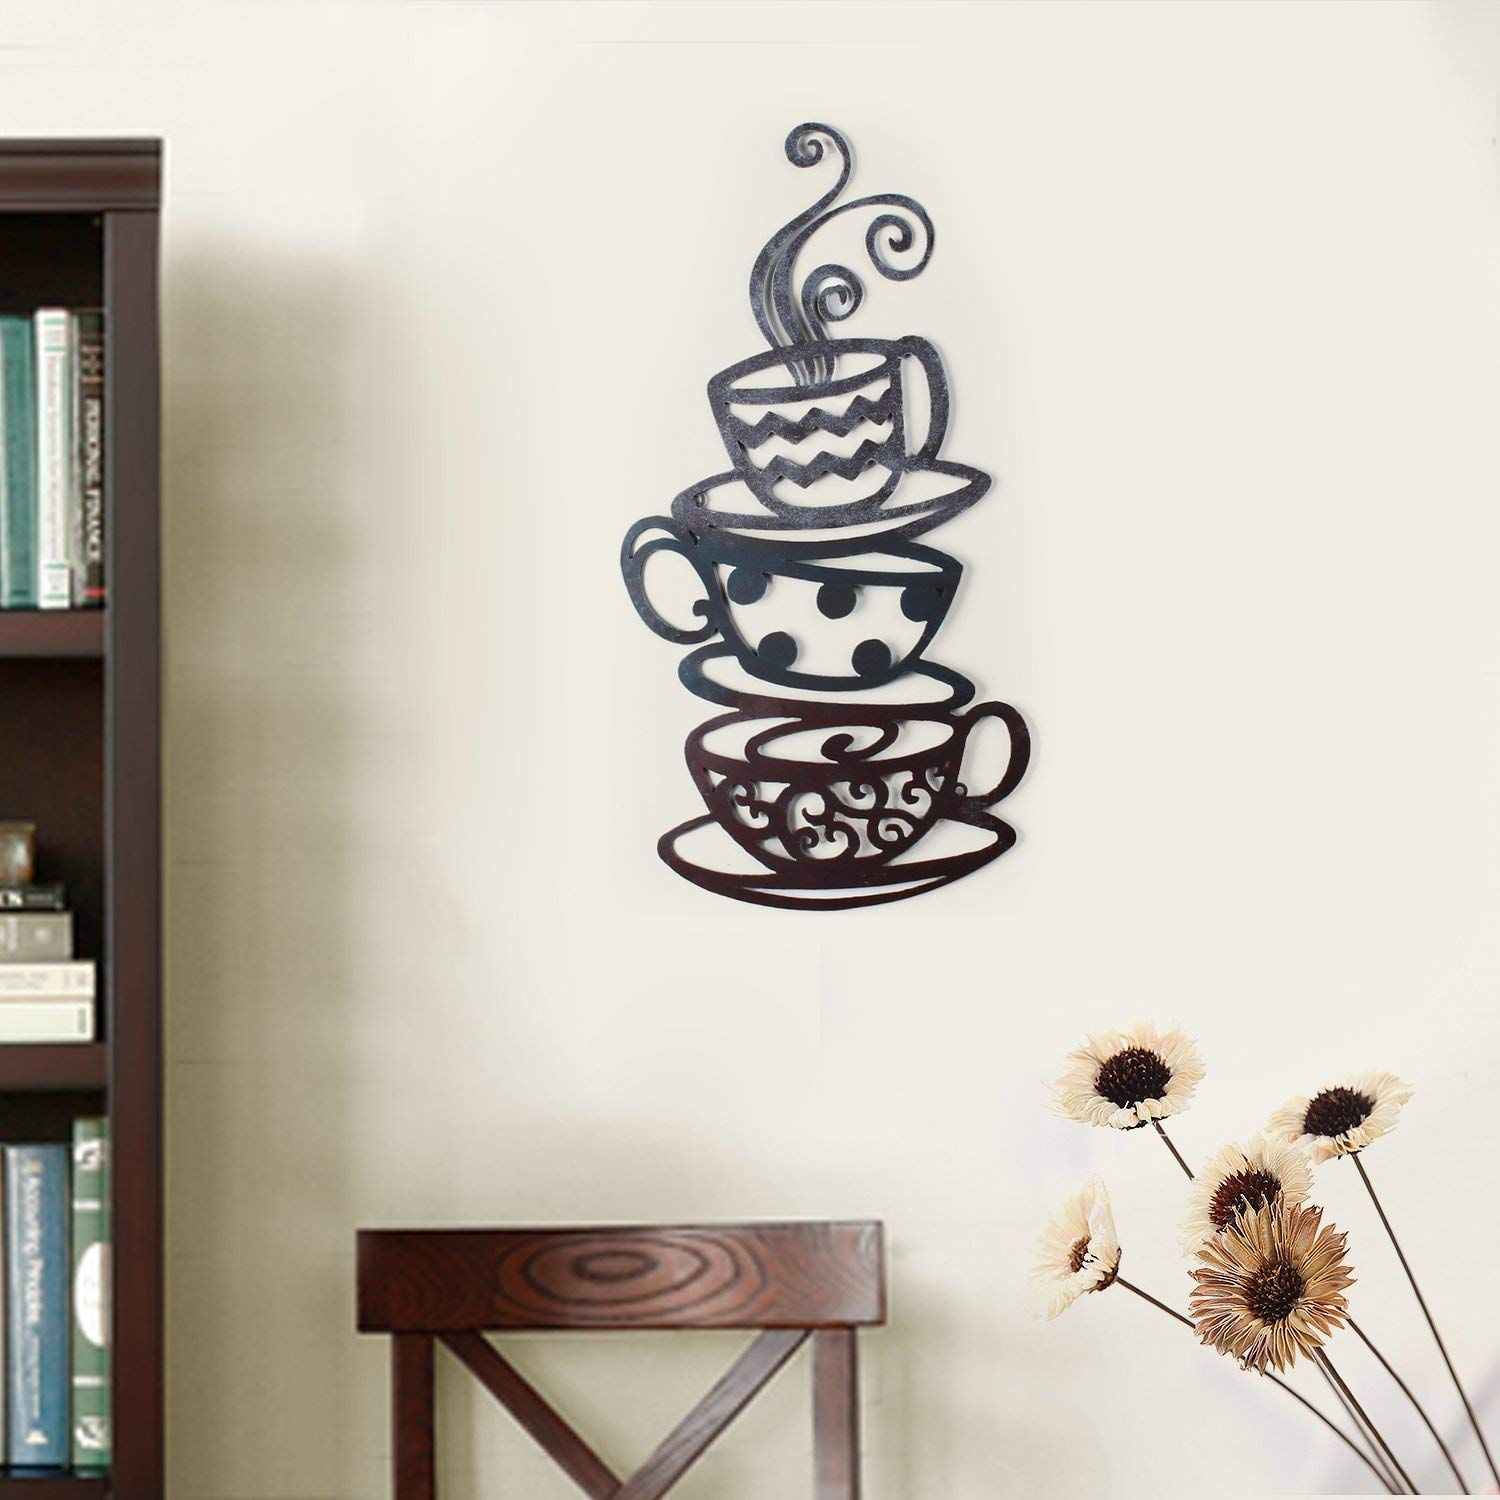 Home'art Decorative Iron Wall Hanging Accents, Three Stacked within Decorative Three Stacked Coffee Tea Cups Iron Widget Wall Decor (Image 18 of 30)